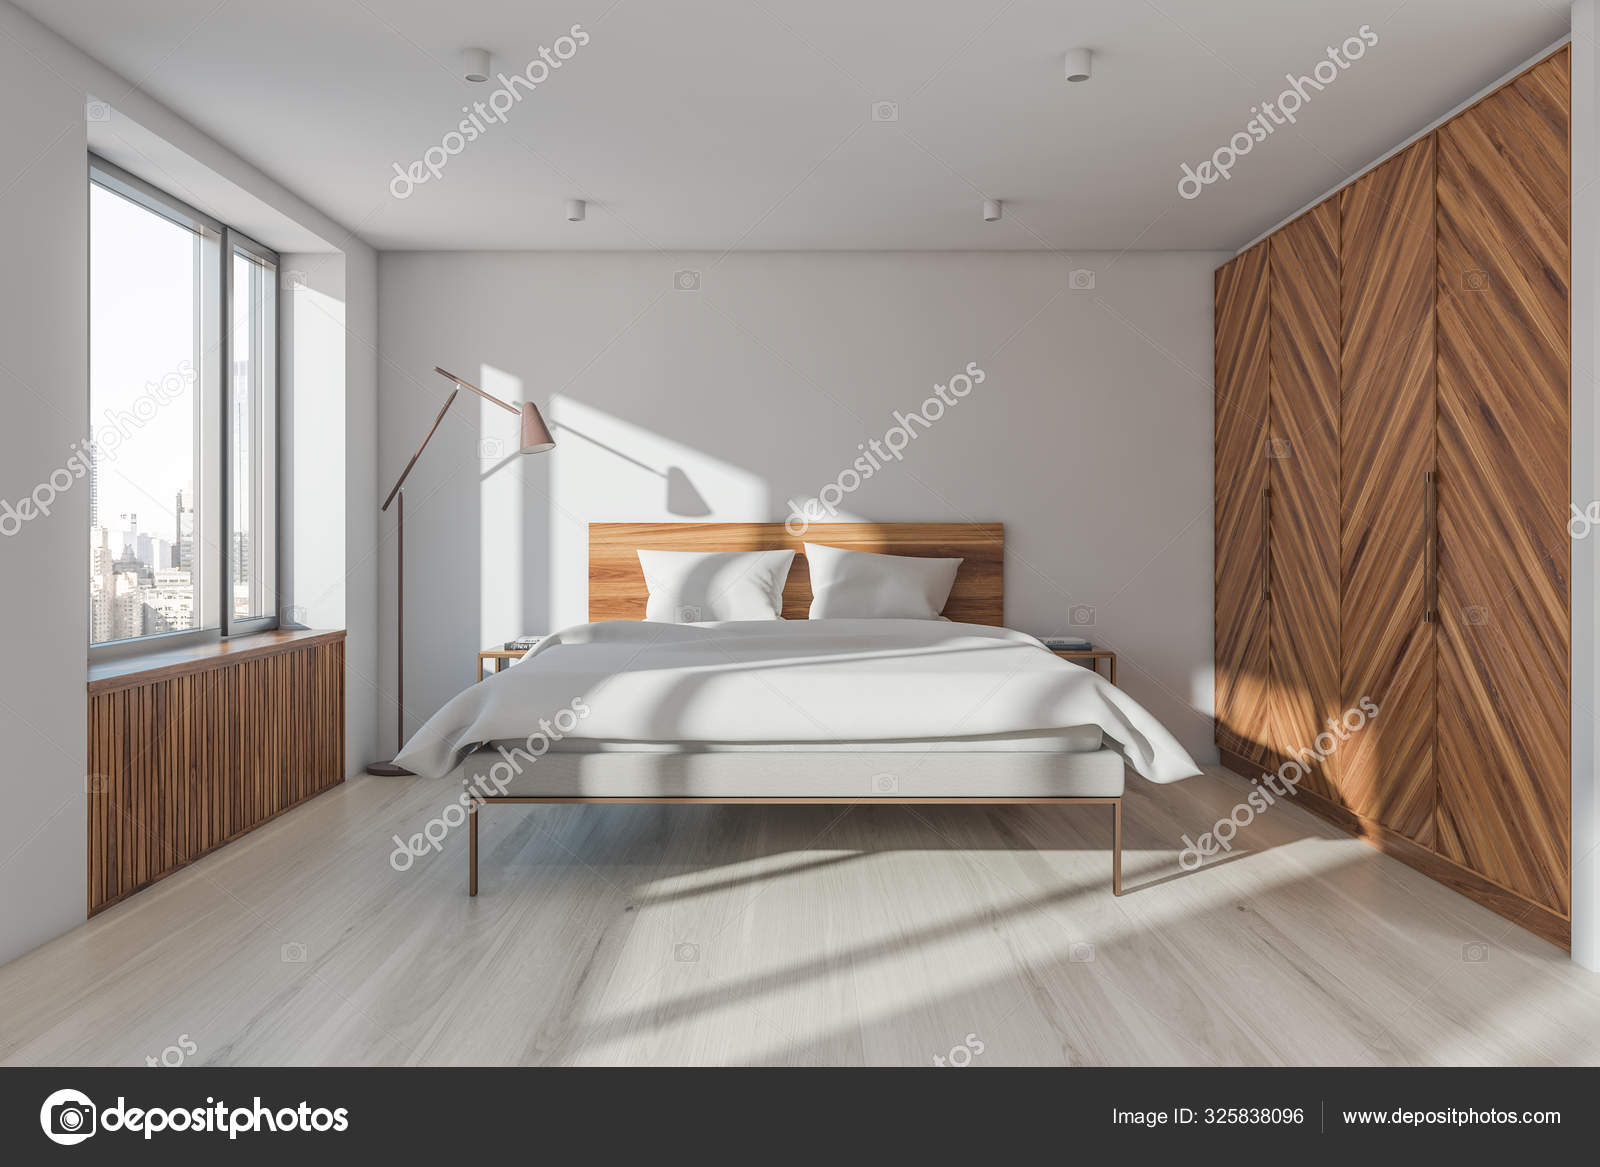 White And Wooden Master Bedroom With Wardrobe Stock Photo Image By C Denisismagilov 325838096